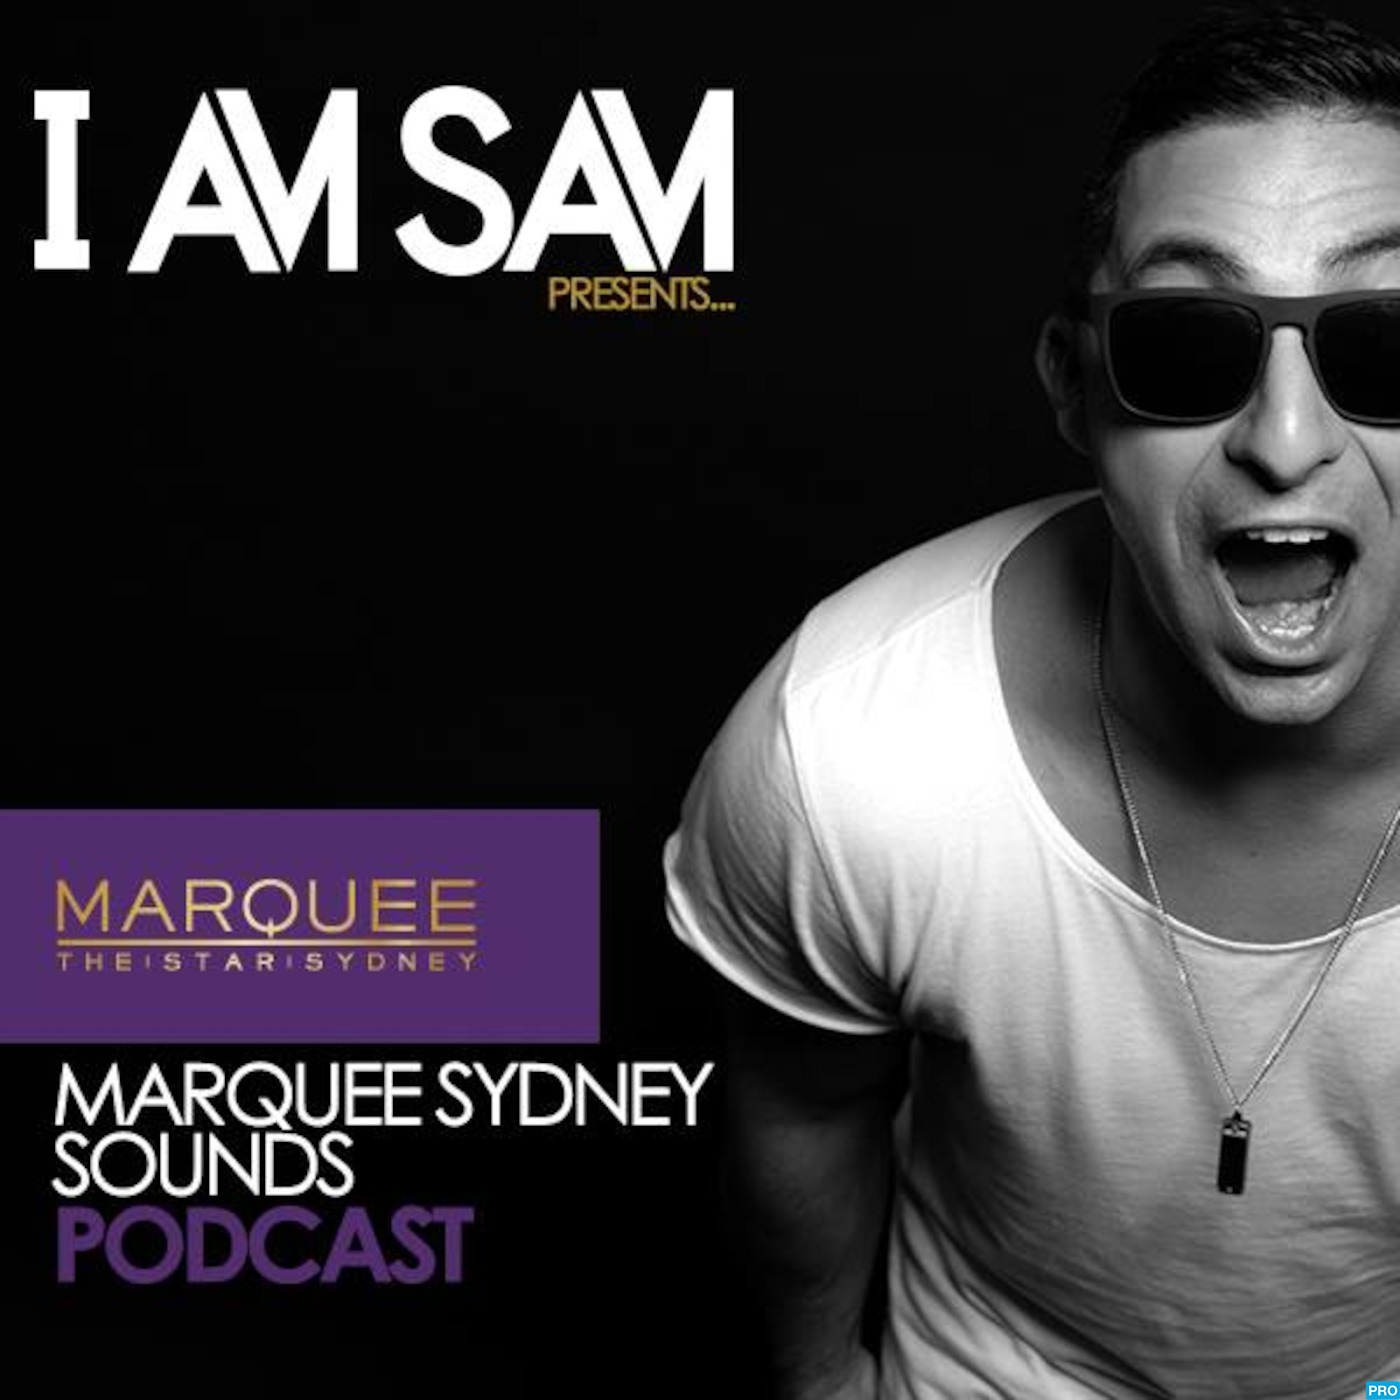 I Am Sam presents: Marquee Sydney Sounds